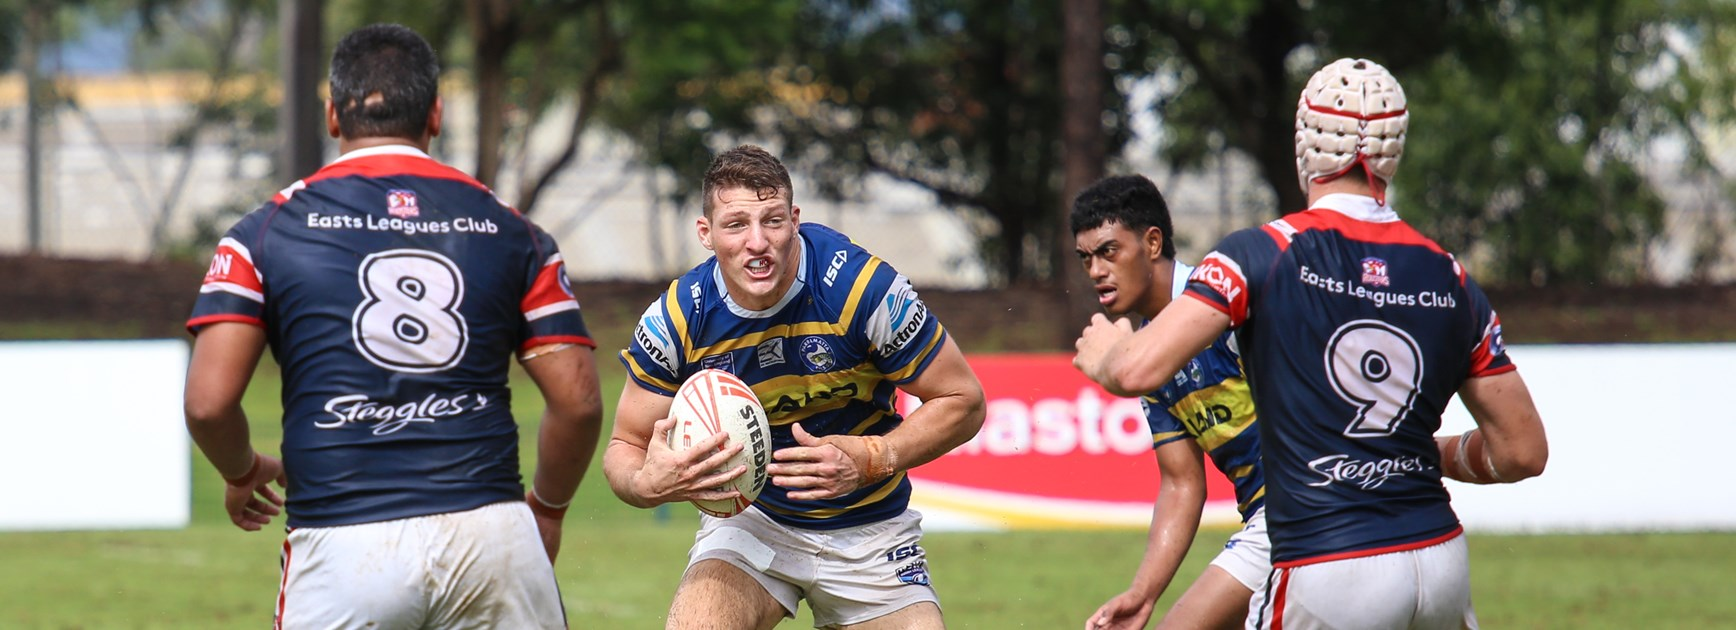 Junior Rep - NSWRL R8 & CRL Semi Finals